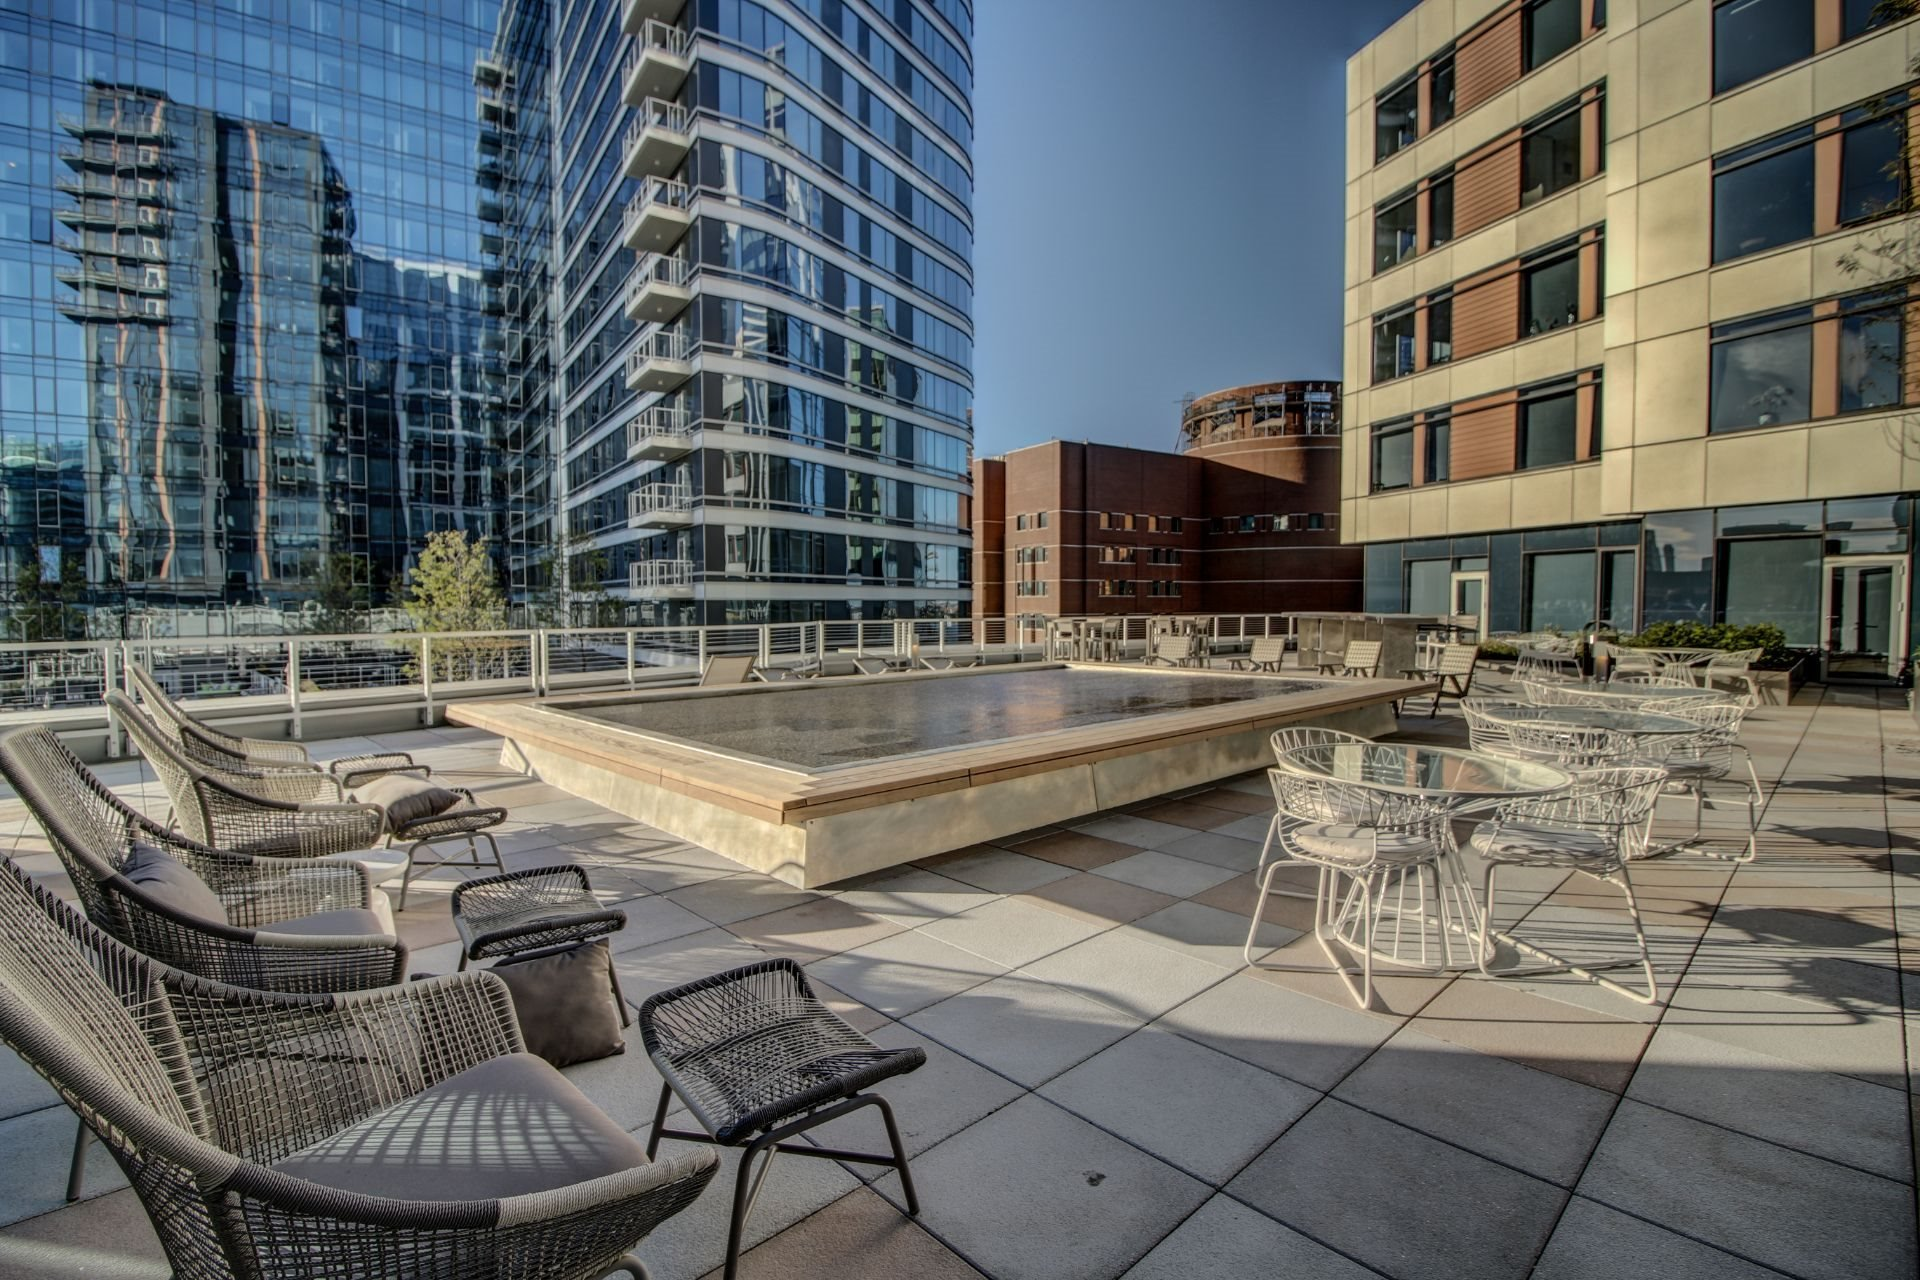 Healthy Living in Boston Seaport-9000 SF of Outdoor Amenity Space-VIA Seaport Residences